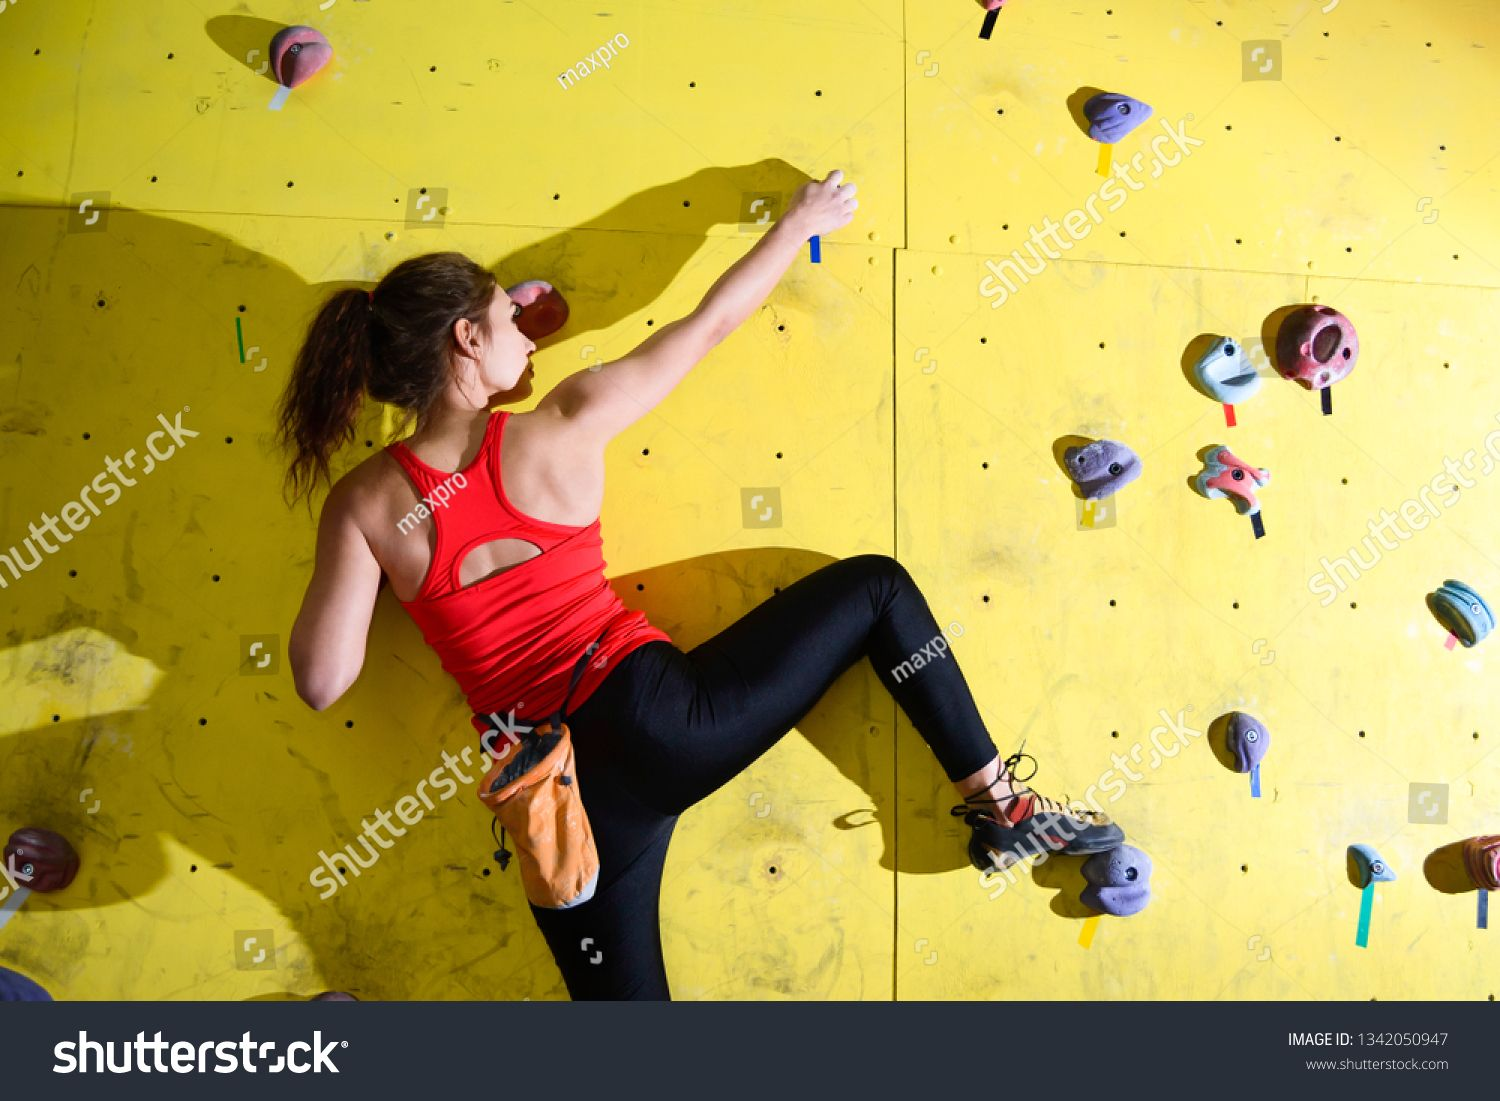 young active woman bouldering on colorful Royalty Free